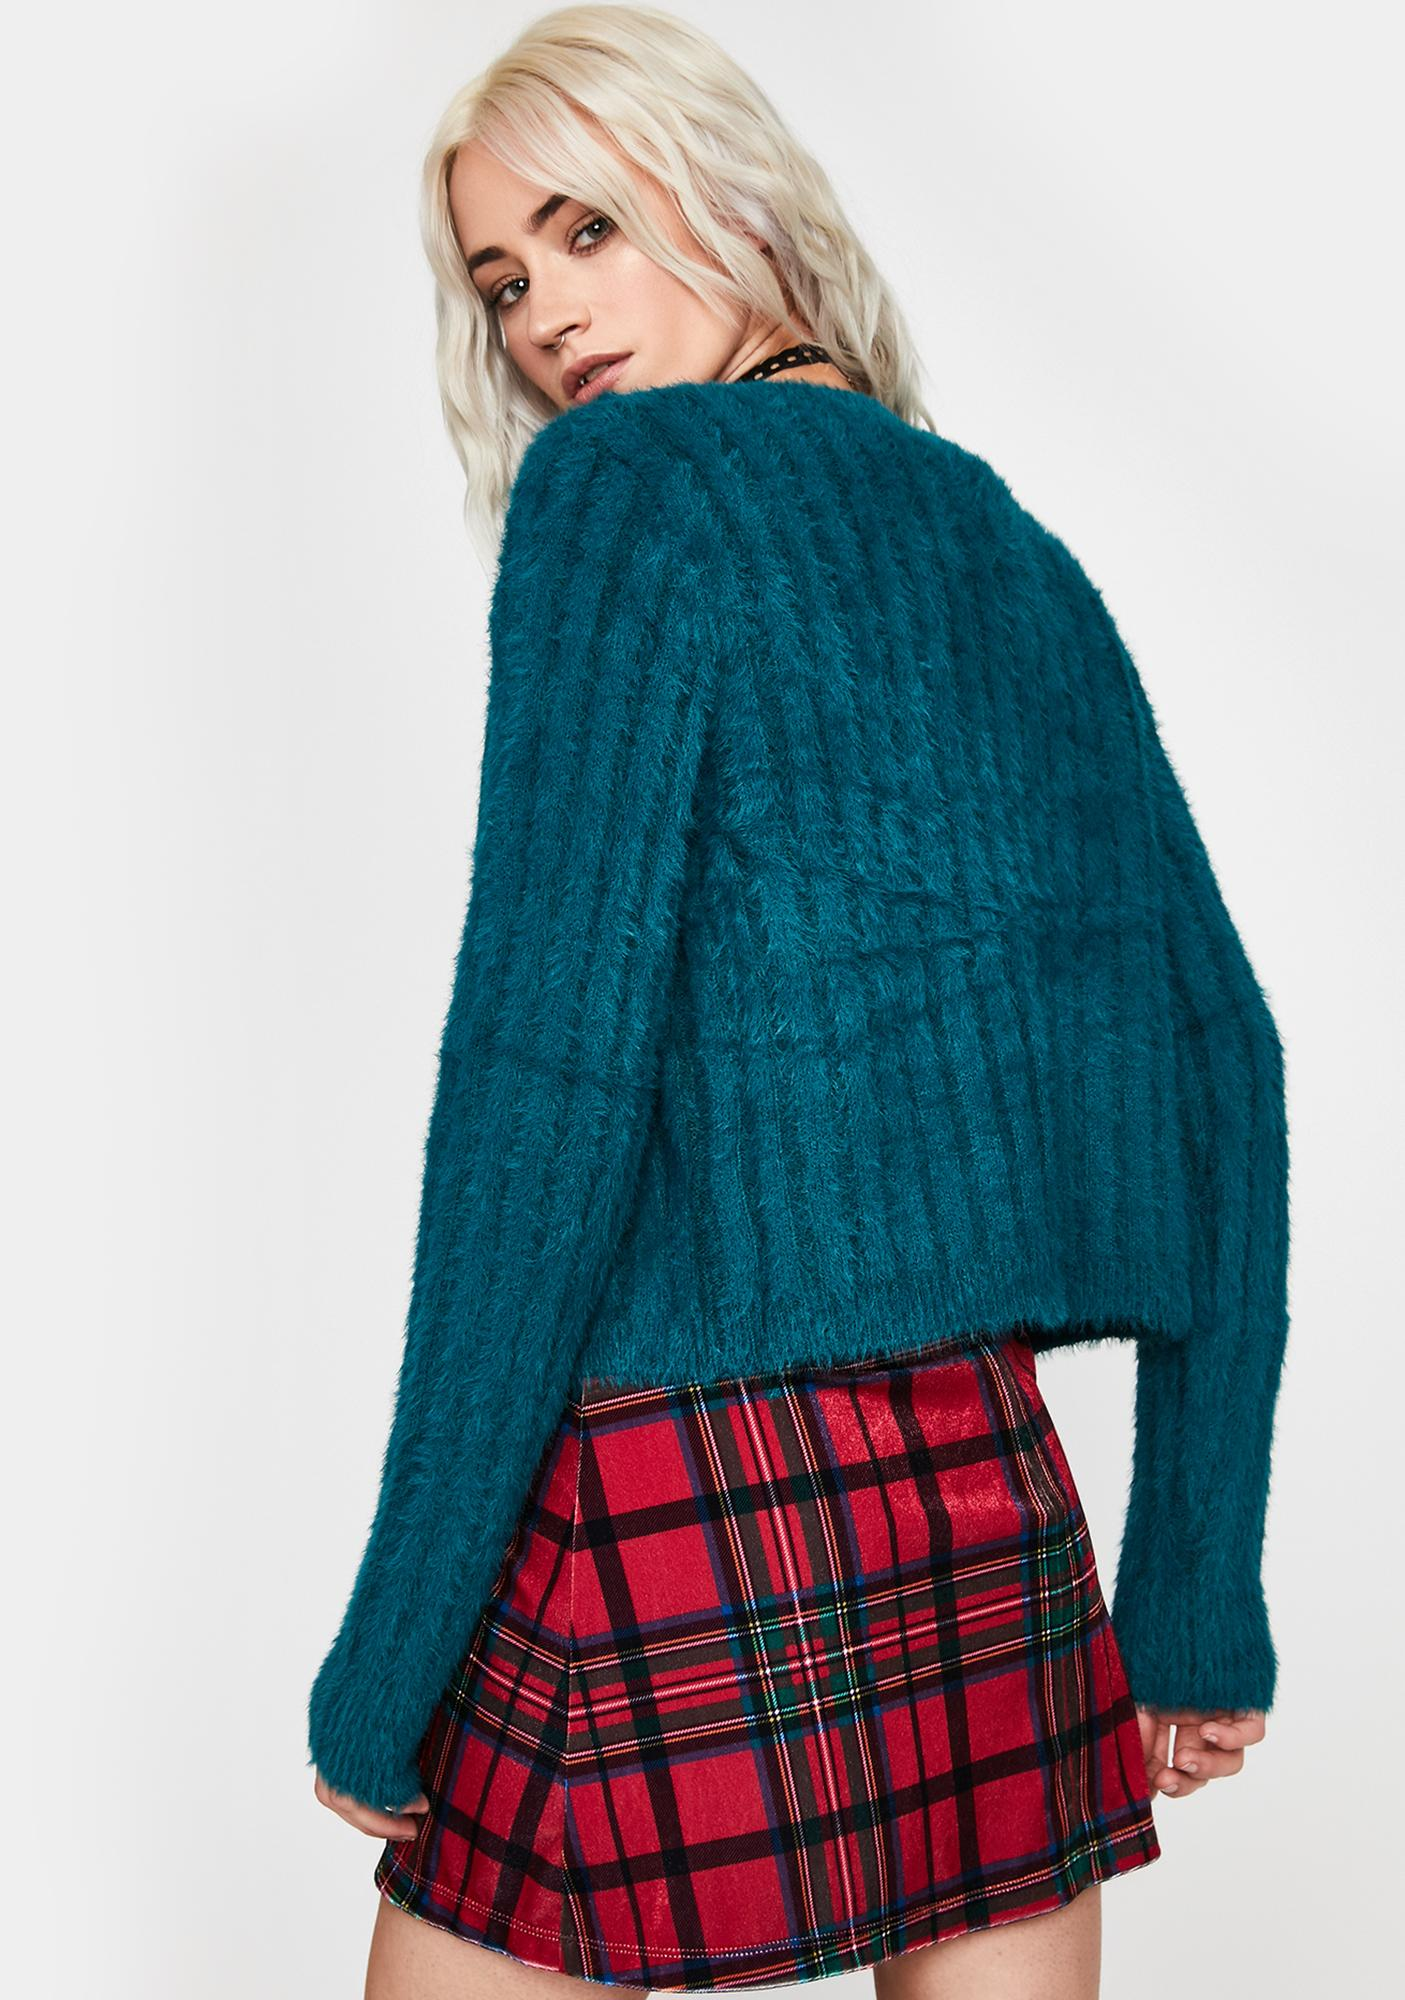 Heartly Yours Fuzzy Cardigan